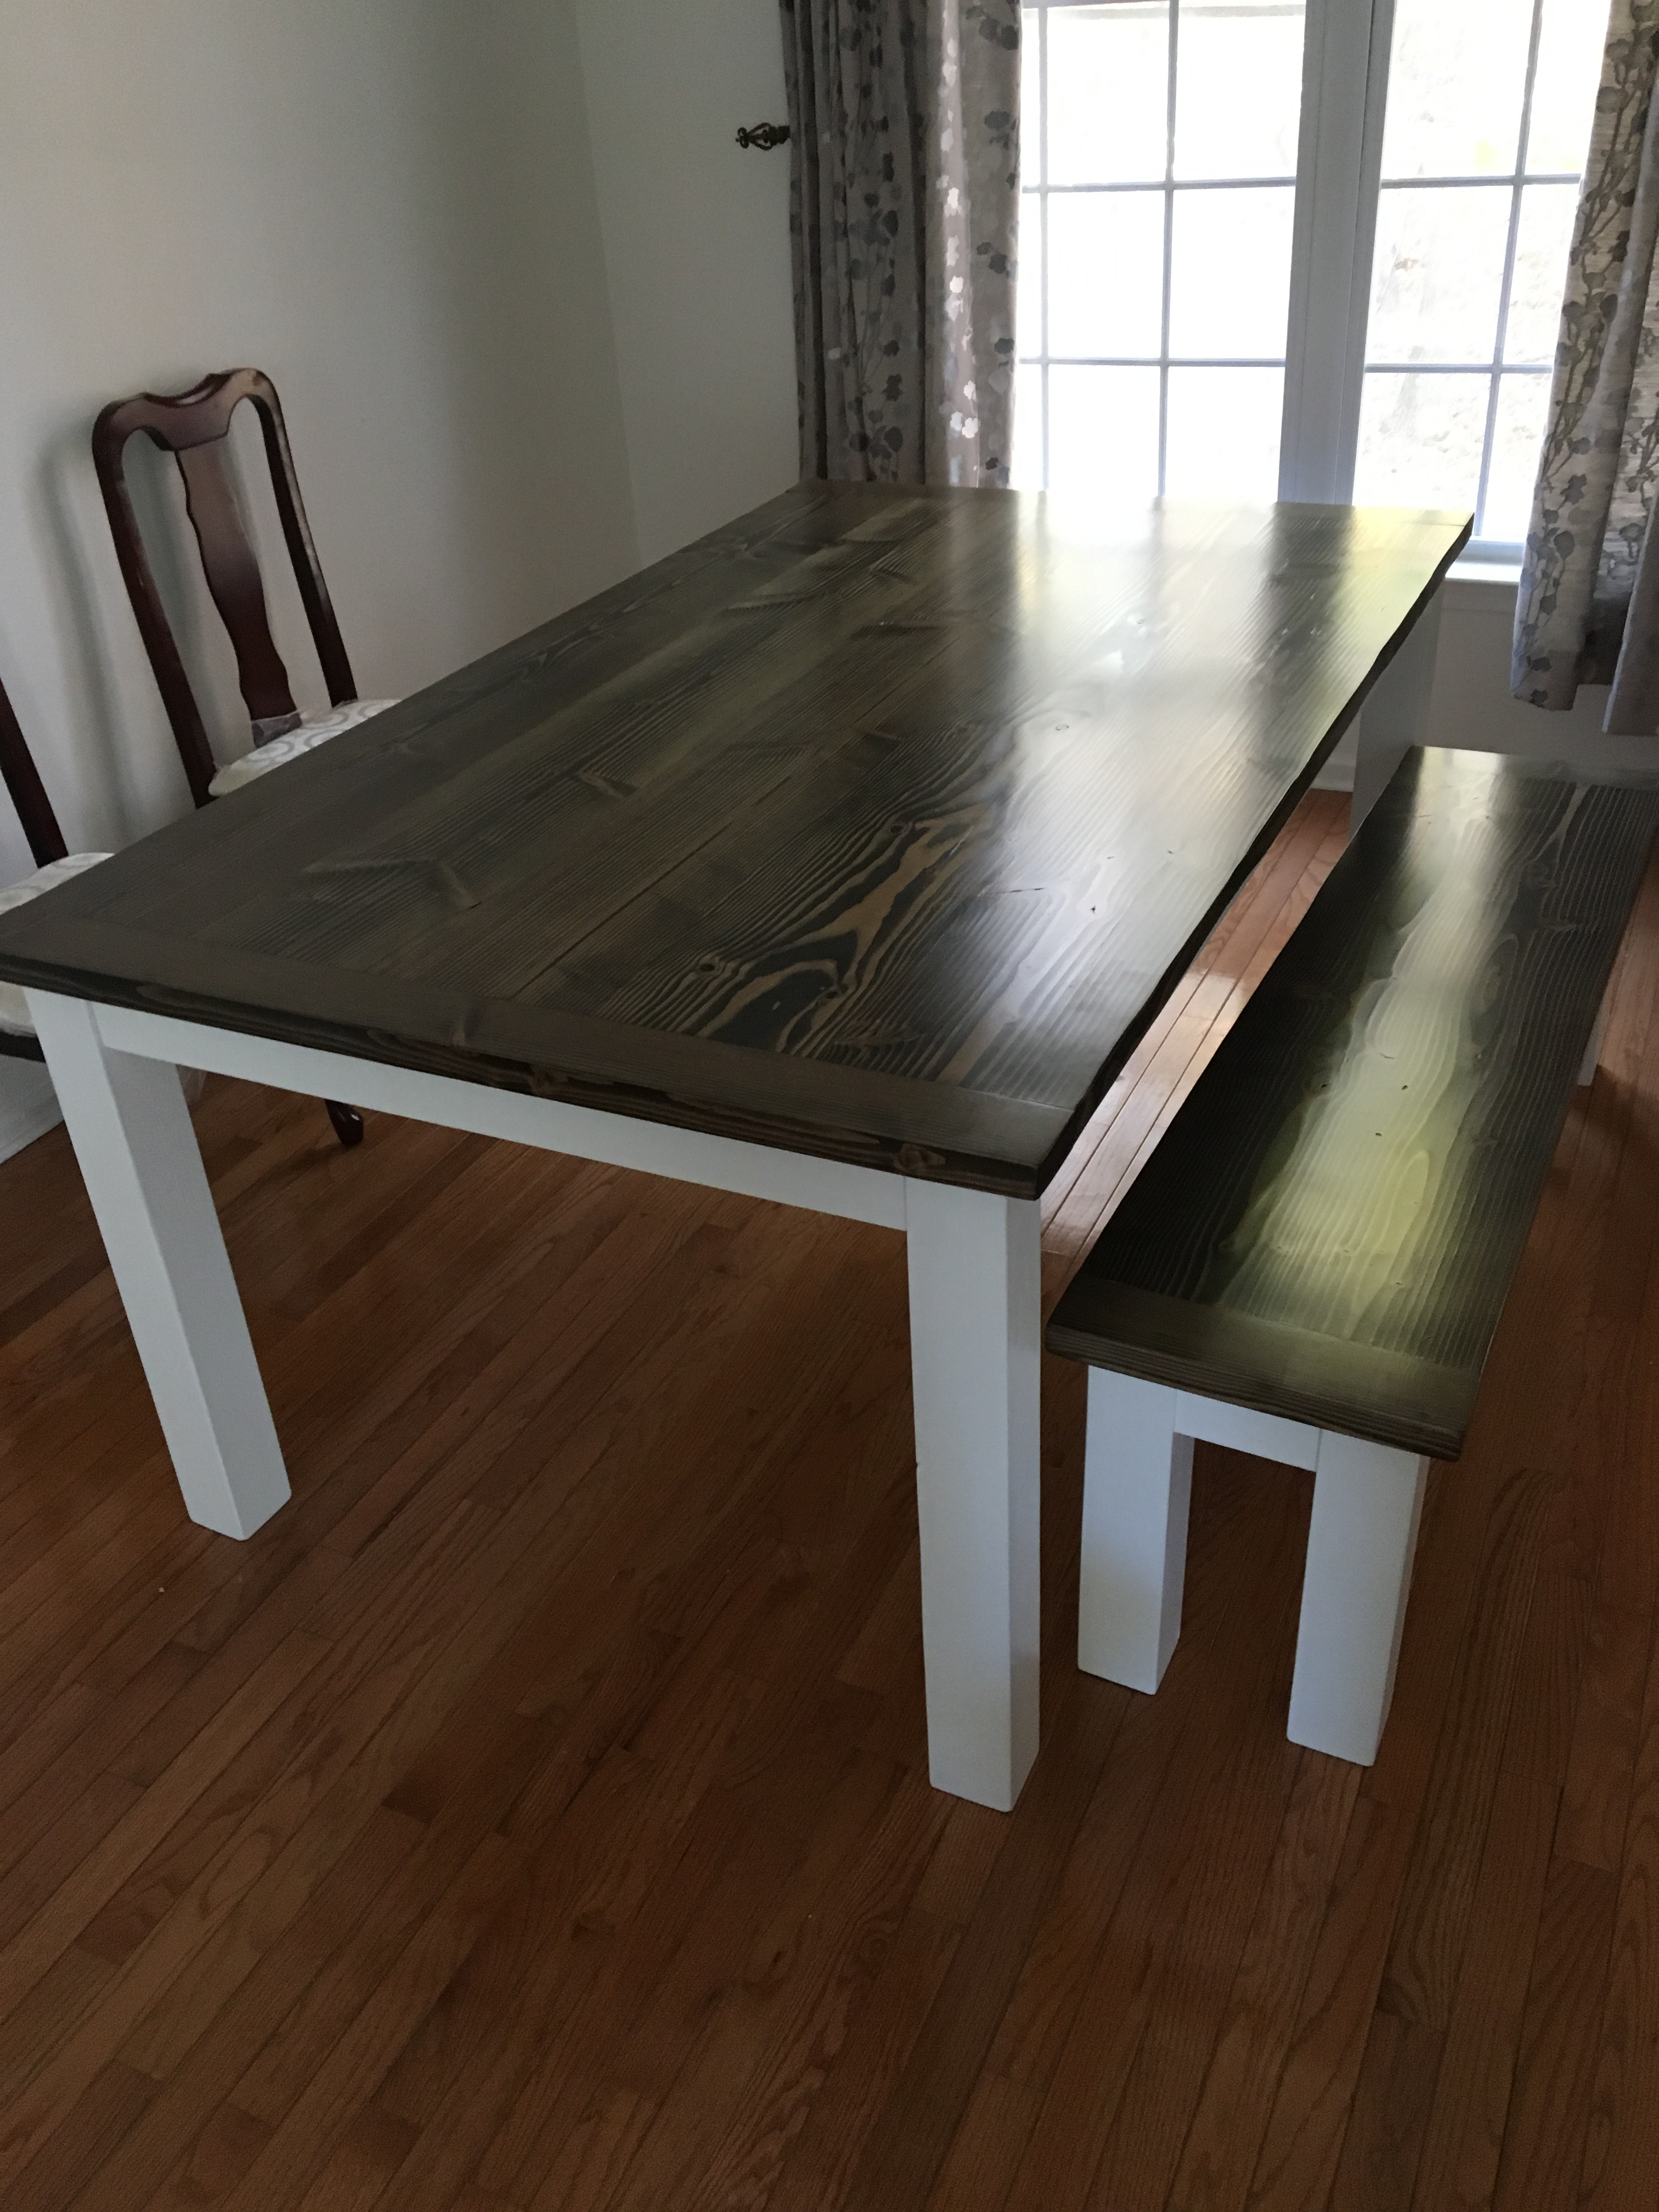 ... Handmade Wood Table And Bench With Breadboard Ends ...